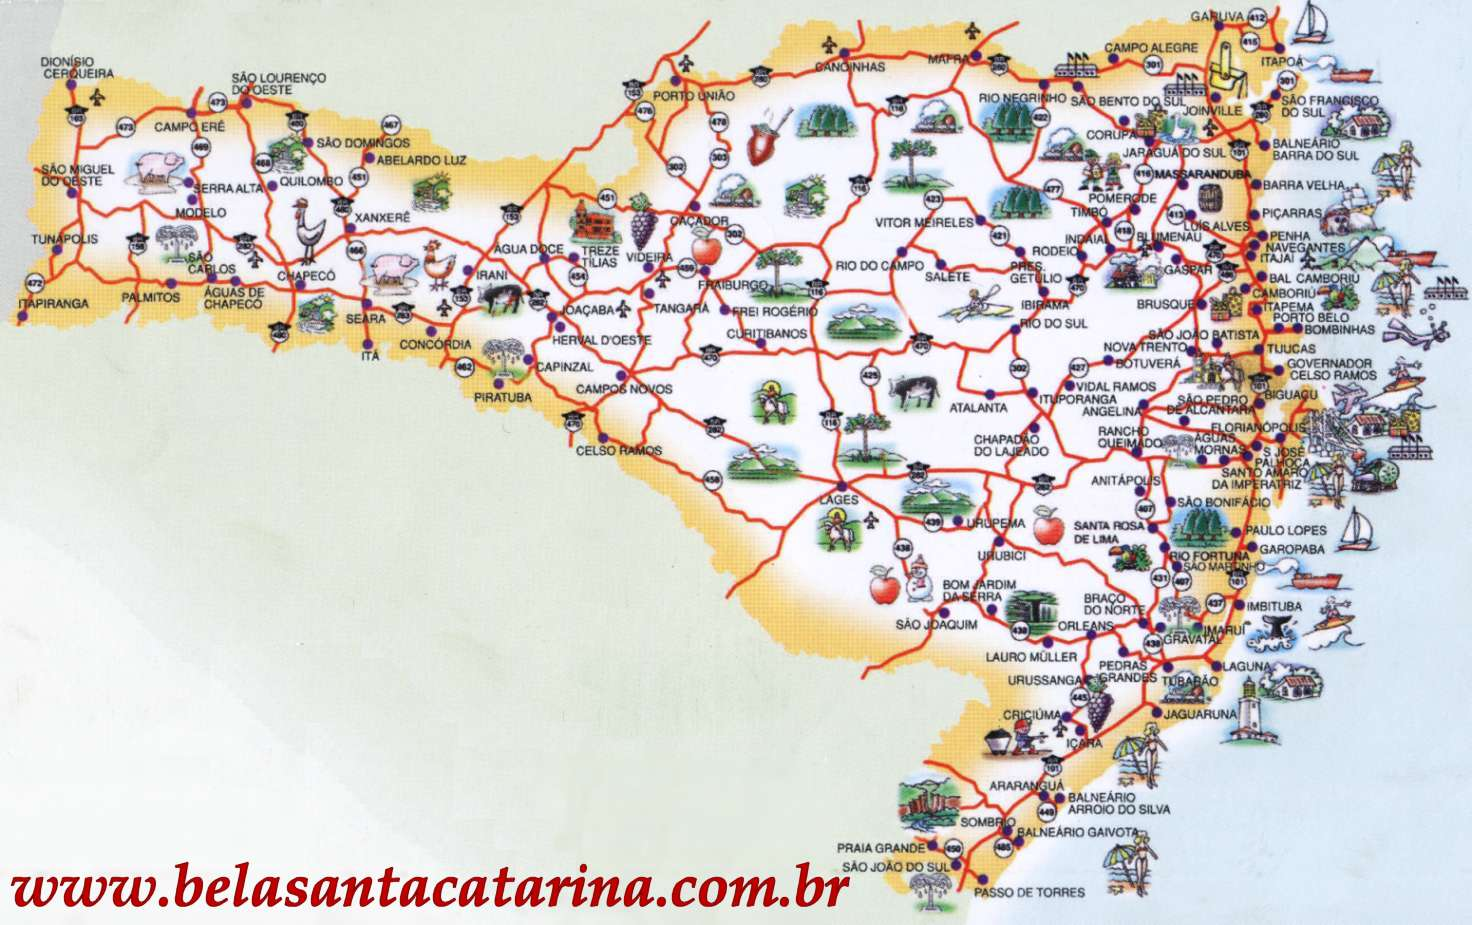 Map of Santa Catarina Brazil